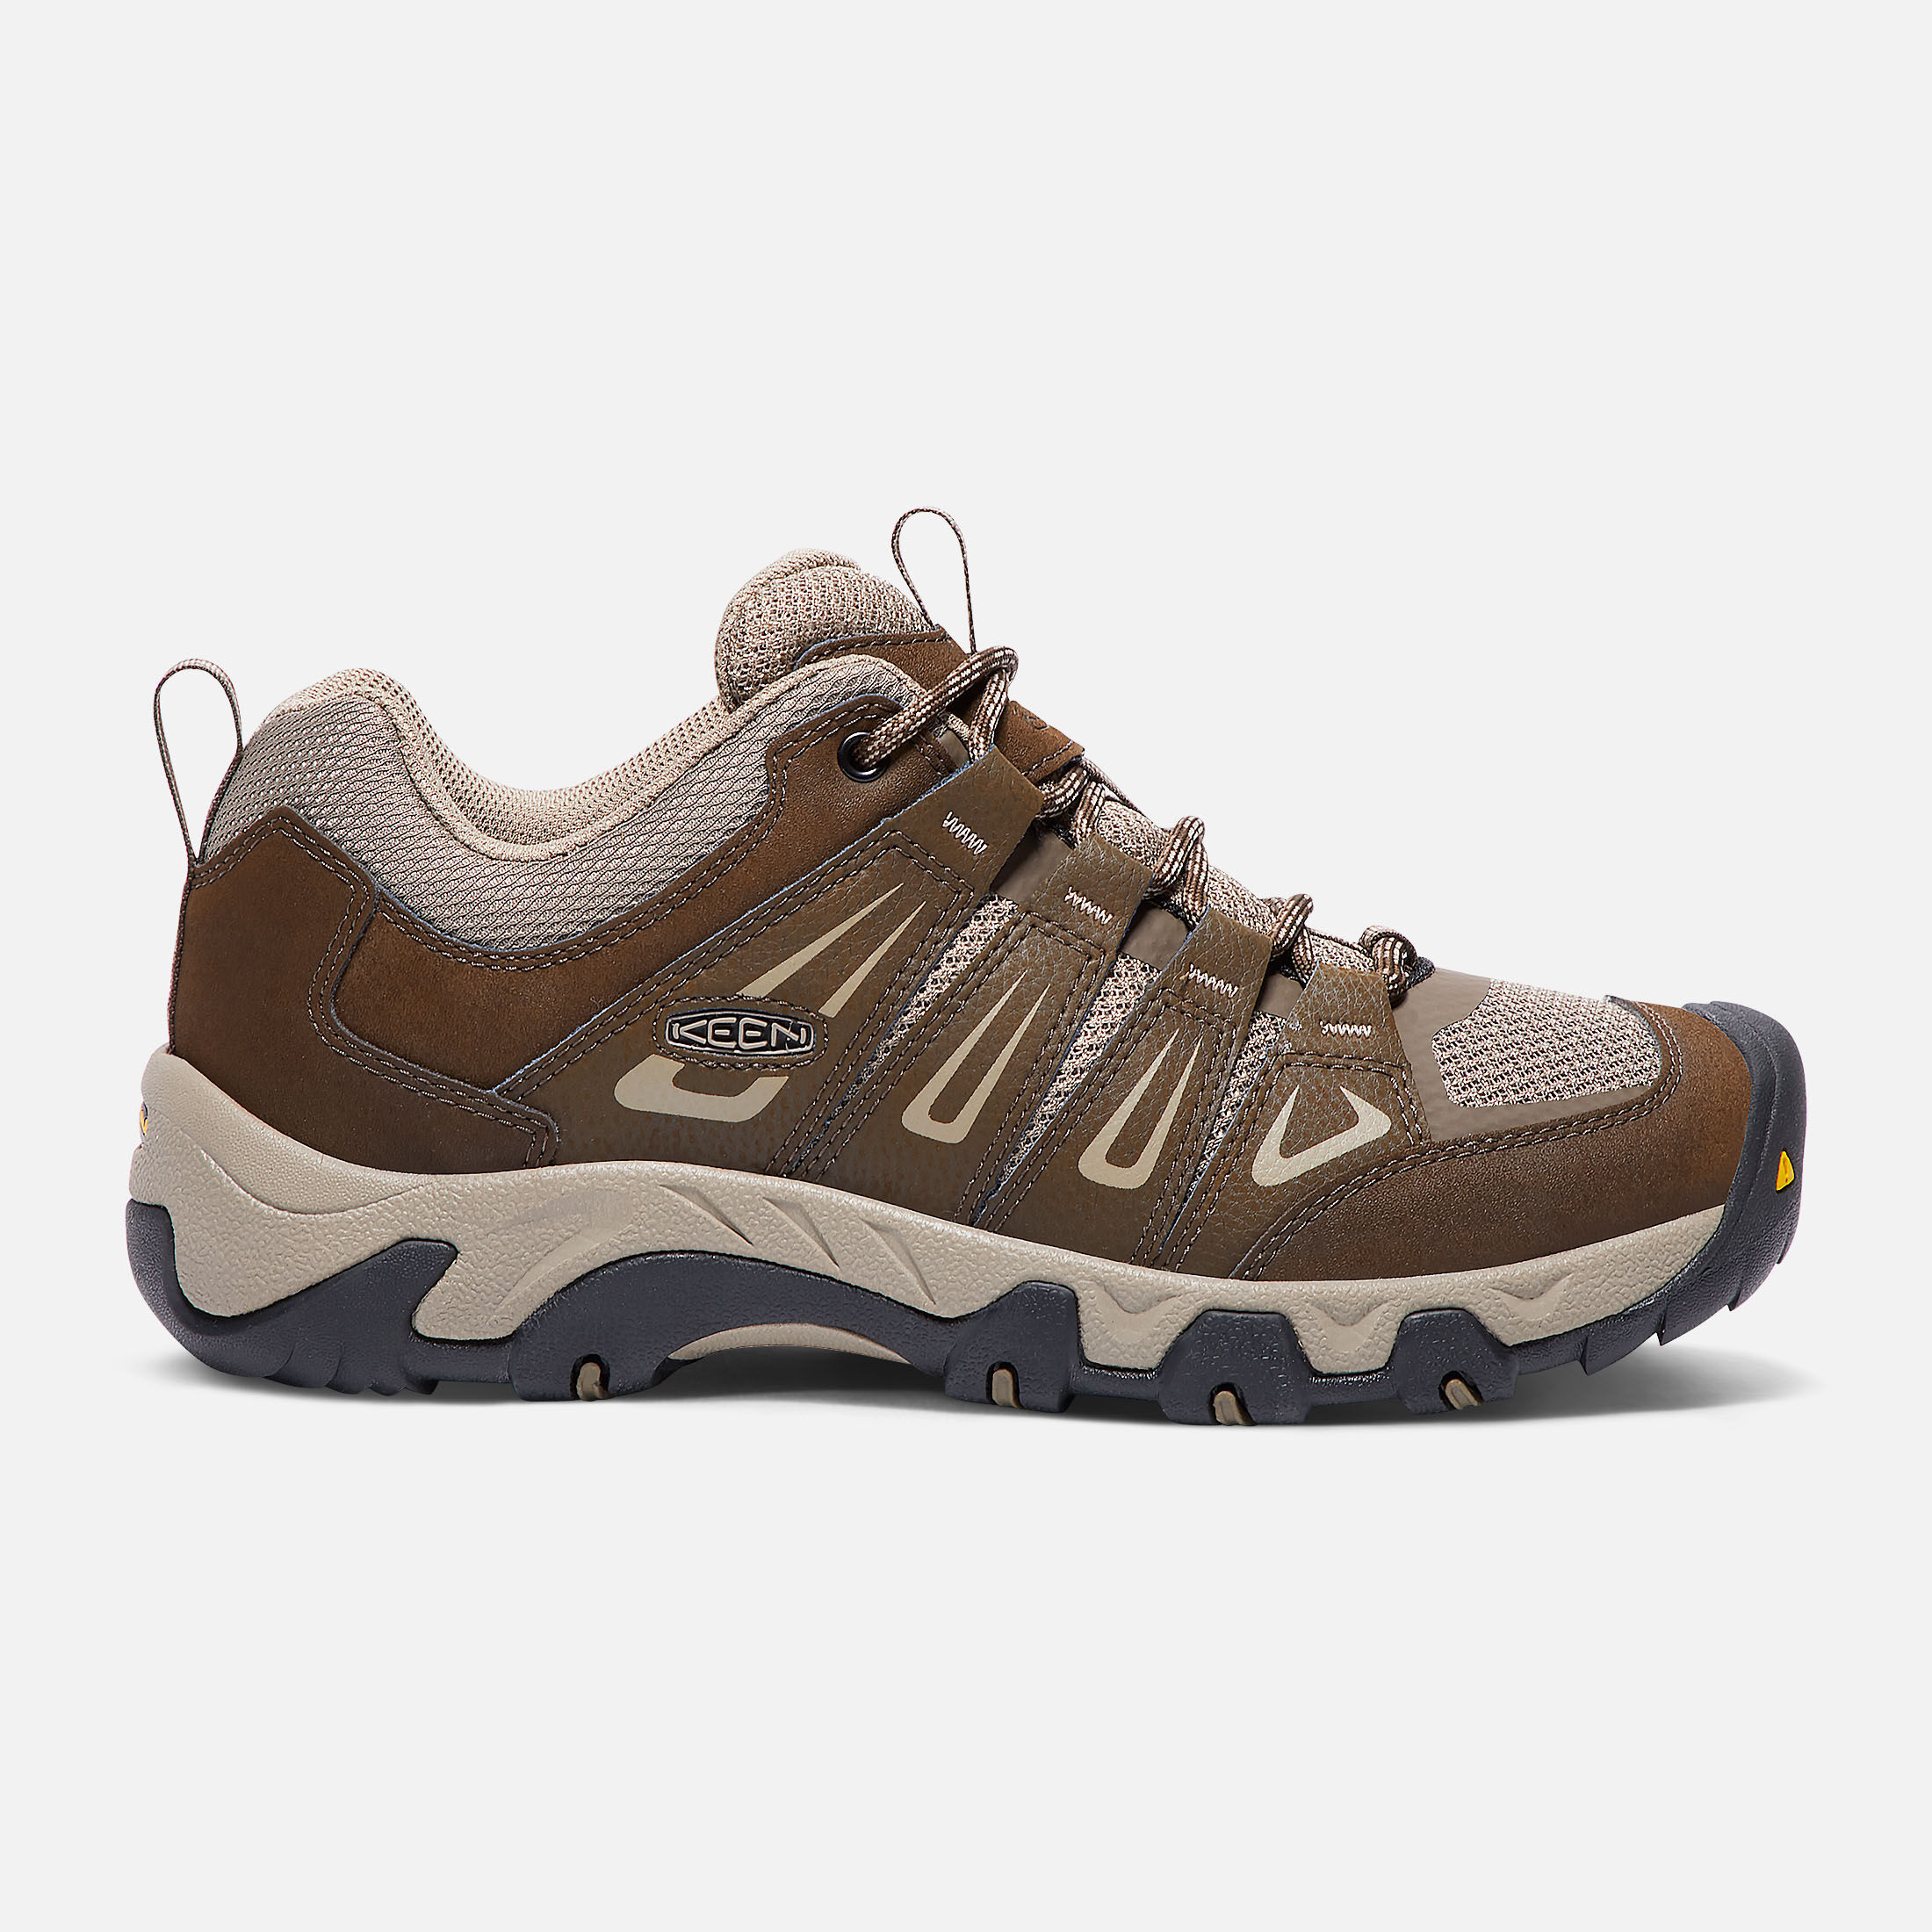 Keen Oakridge Hiker - MEN - BROWN LEATHER 0